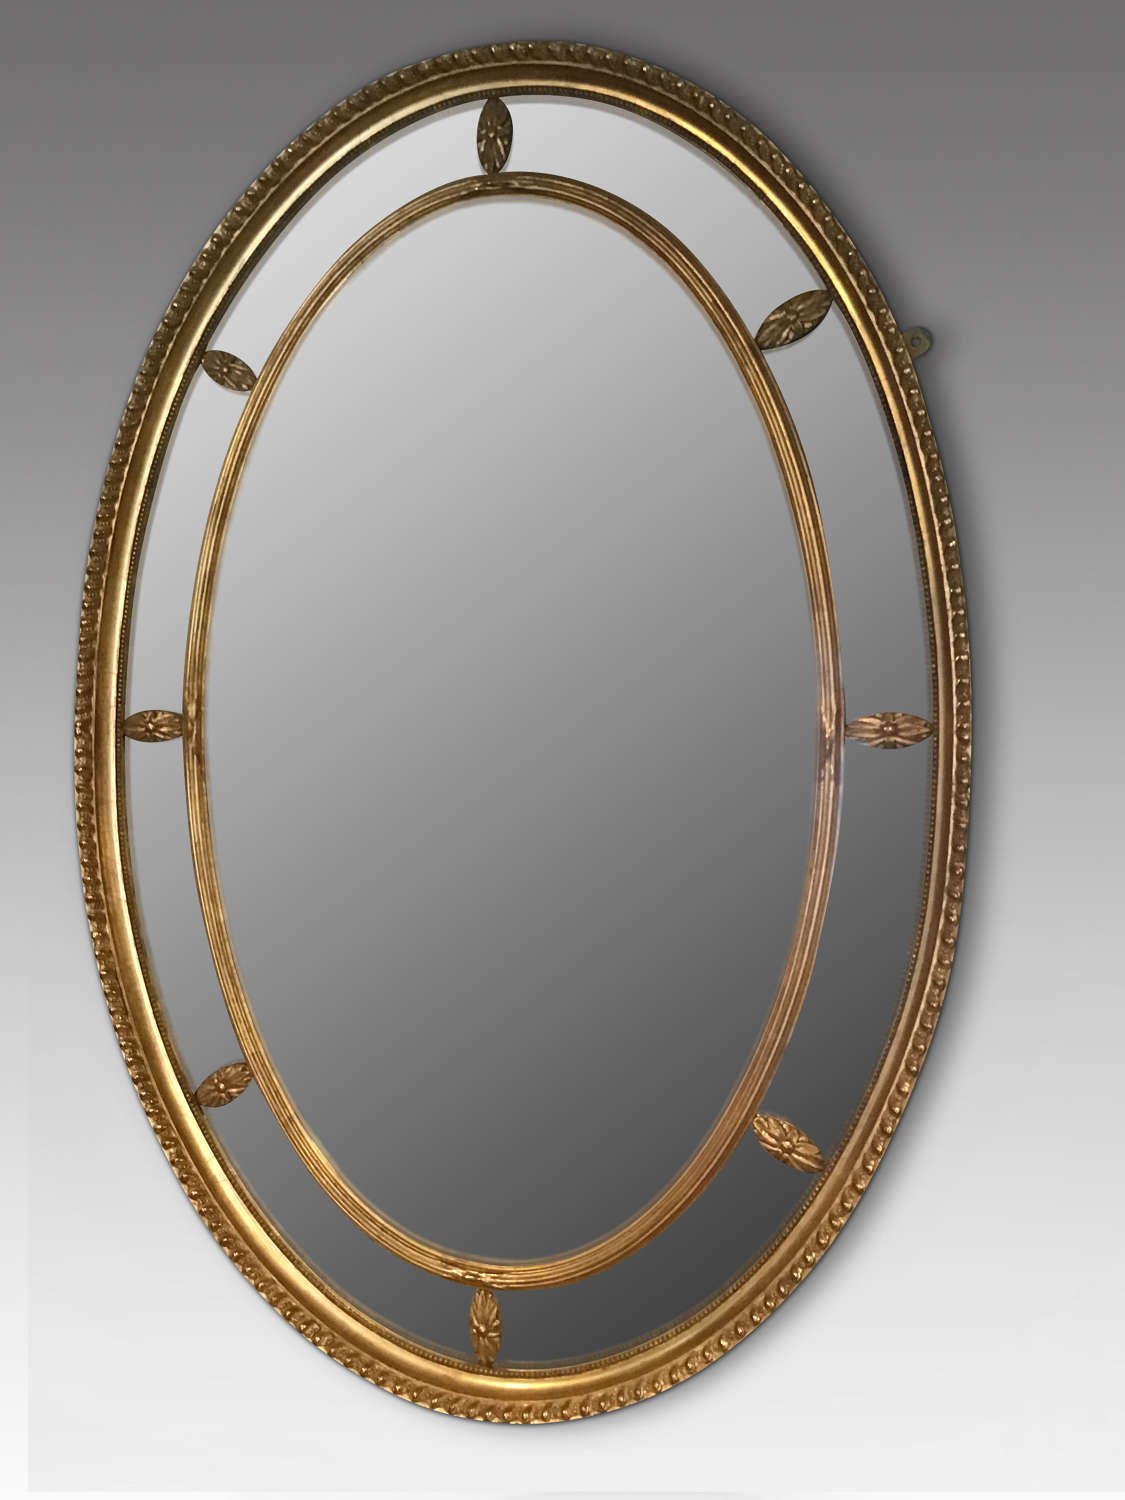 Antique gilt oval wall mirror